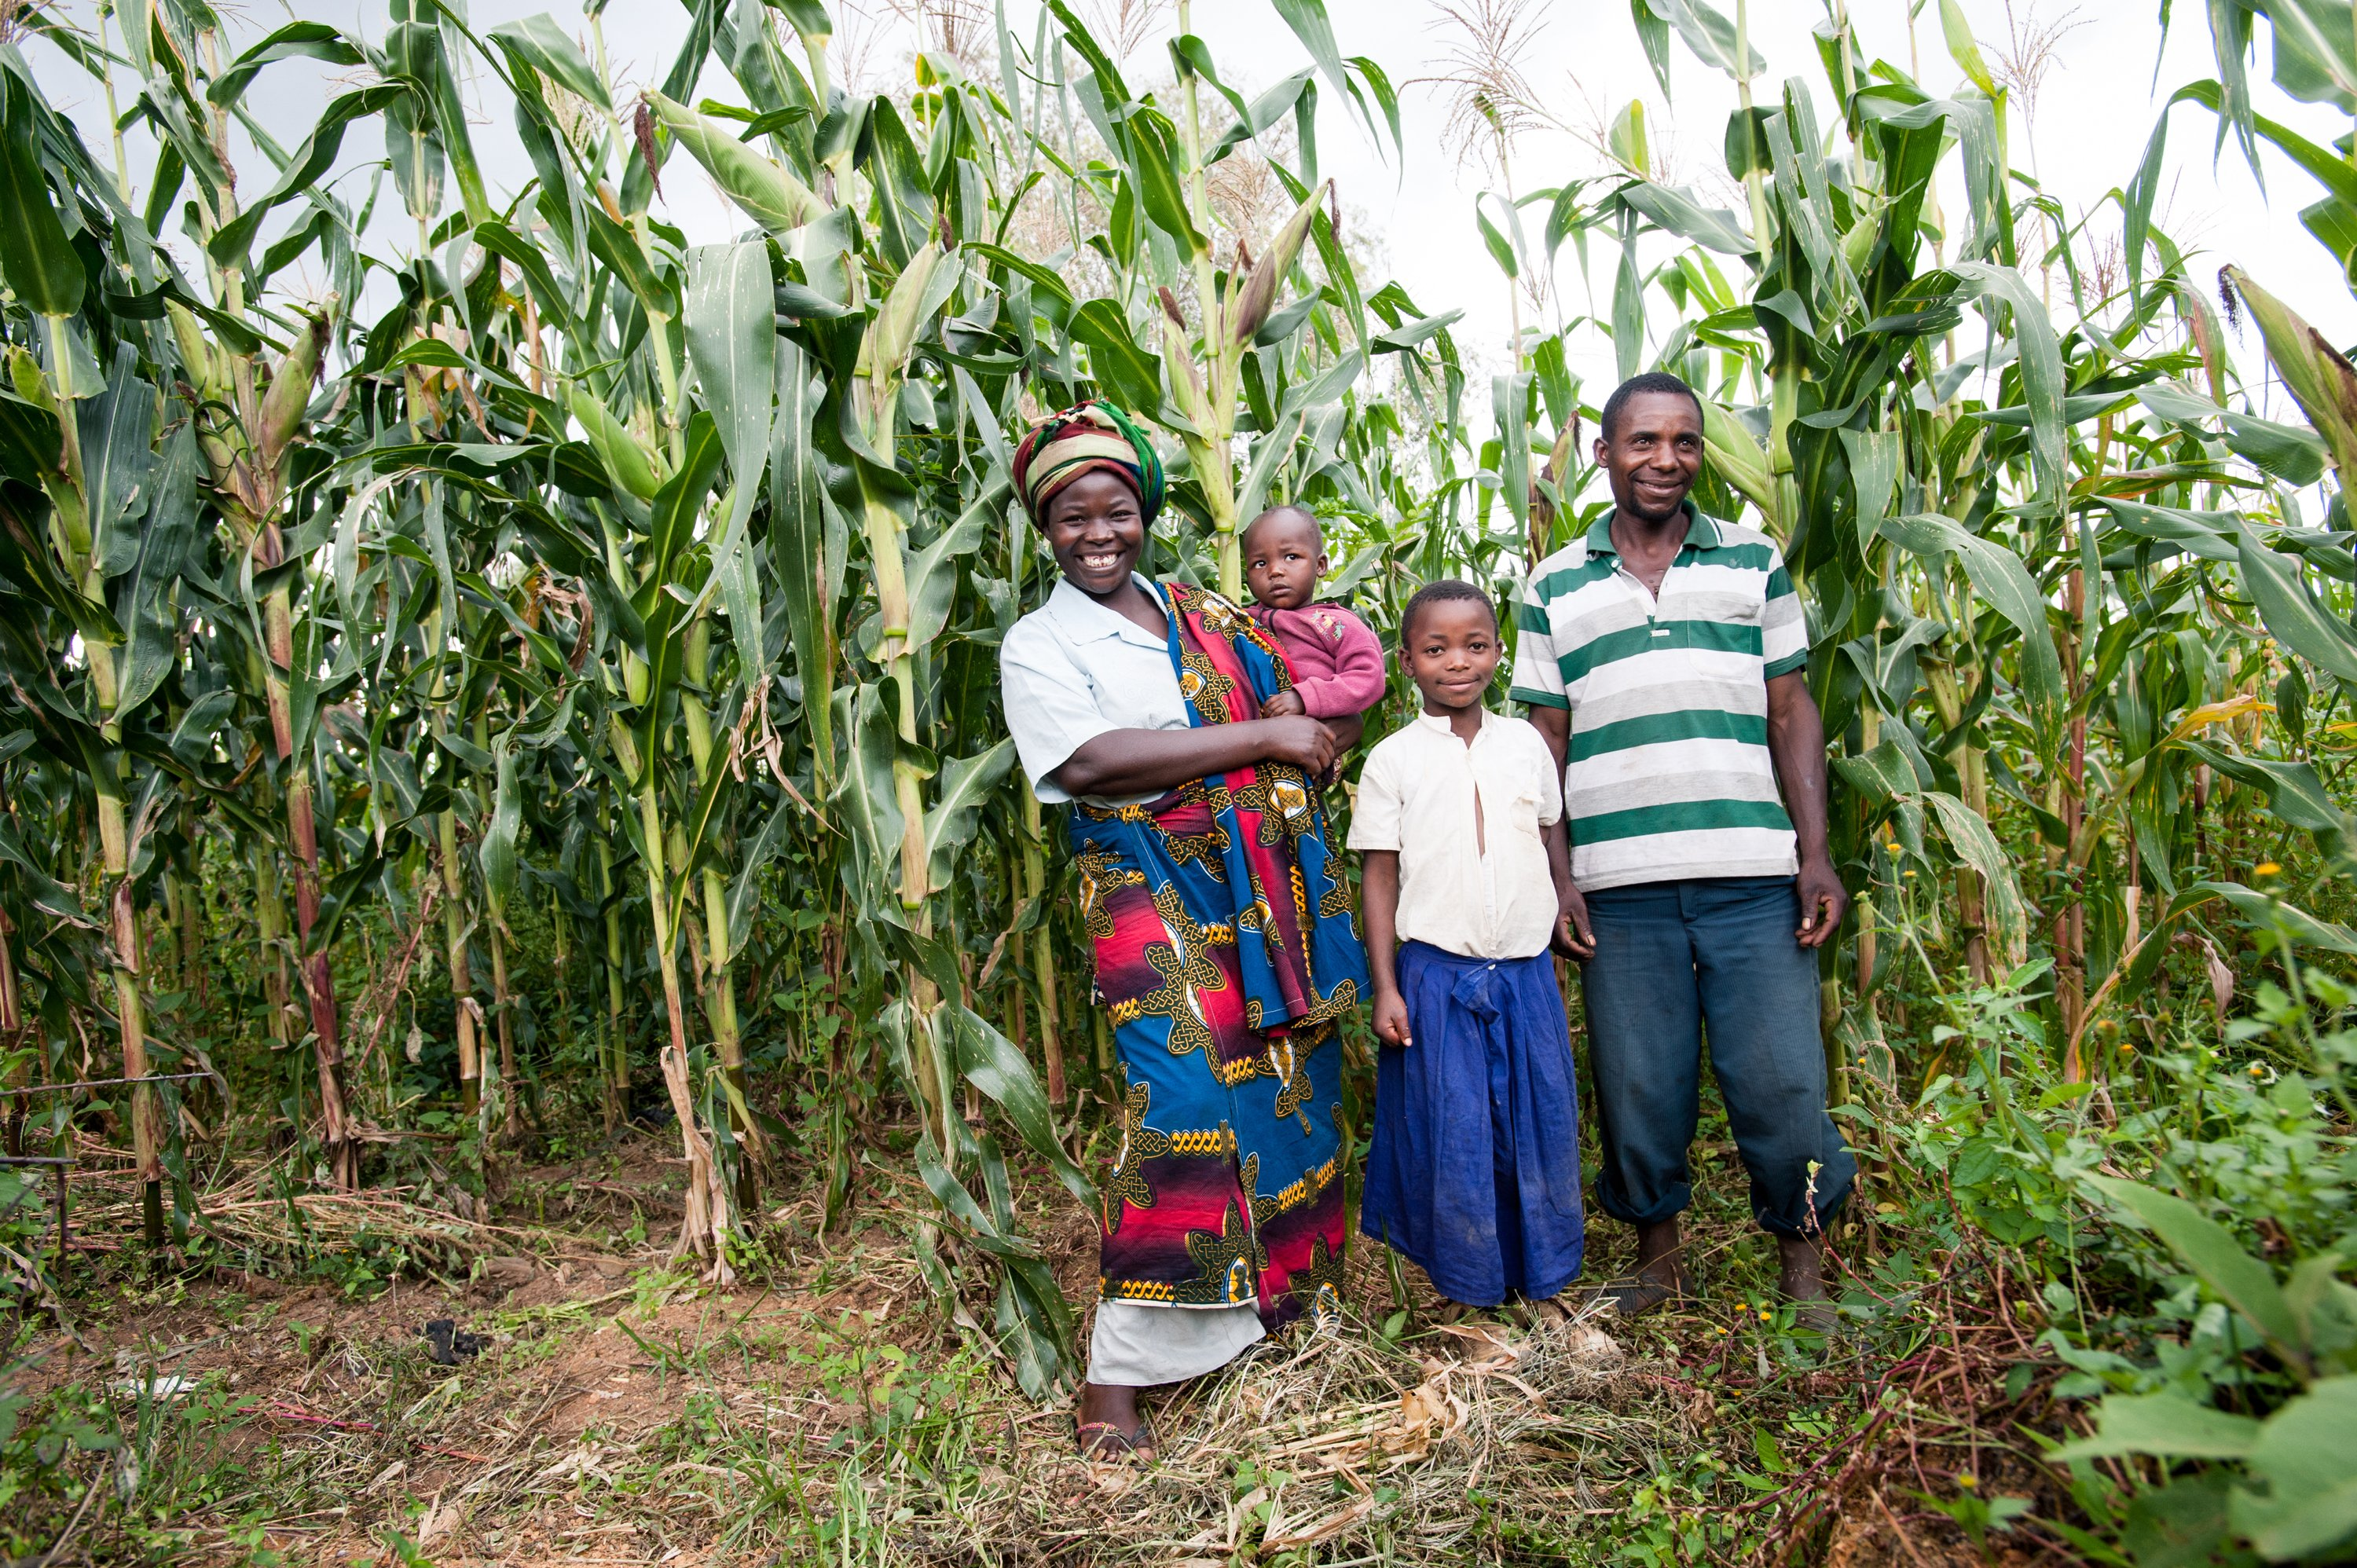 Maria Lume and Joshua Mbwilo with their daughters Ester and Ann in Sadoni, Tanzania